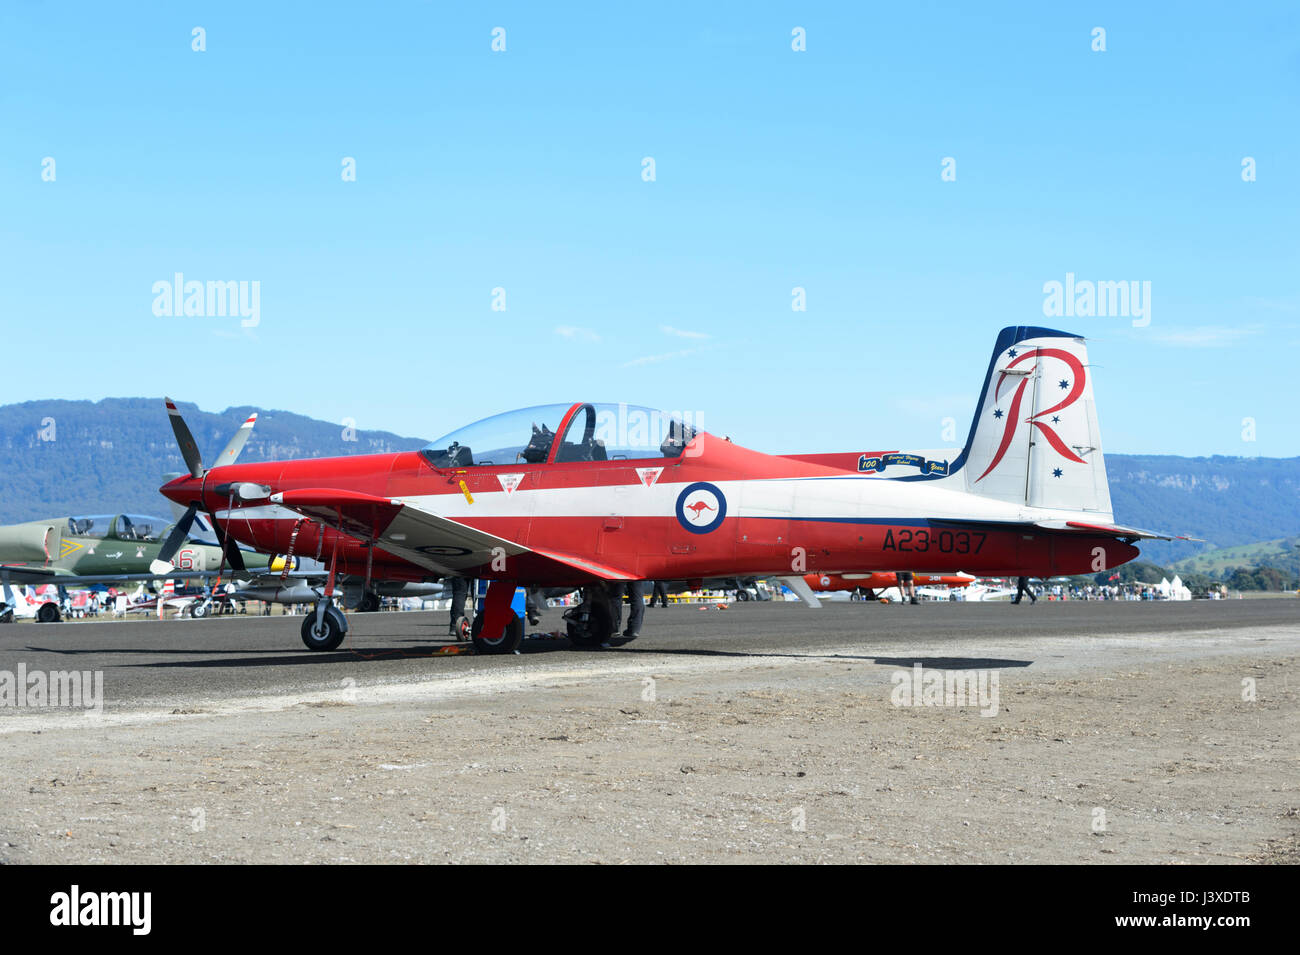 Pilatus PC-9A A23-037 of the RAAF Roulettes Formation Aerobatic Team at Wings over Illawarra 2017 Airshow, Albion - Stock Image